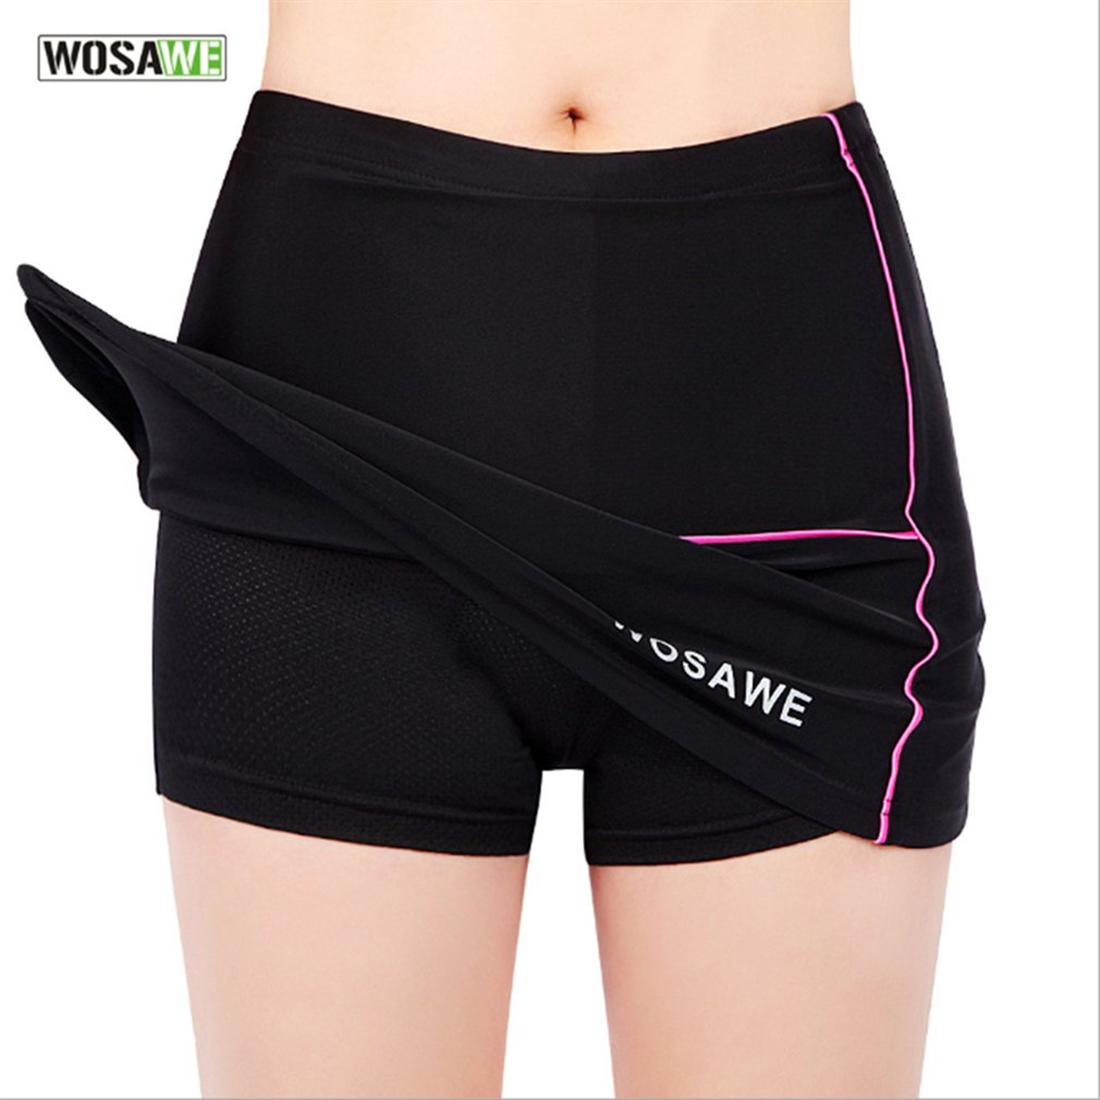 WOSAWE Bicycle Clothing Riding Cycling Women Shorts Skirt Silicone